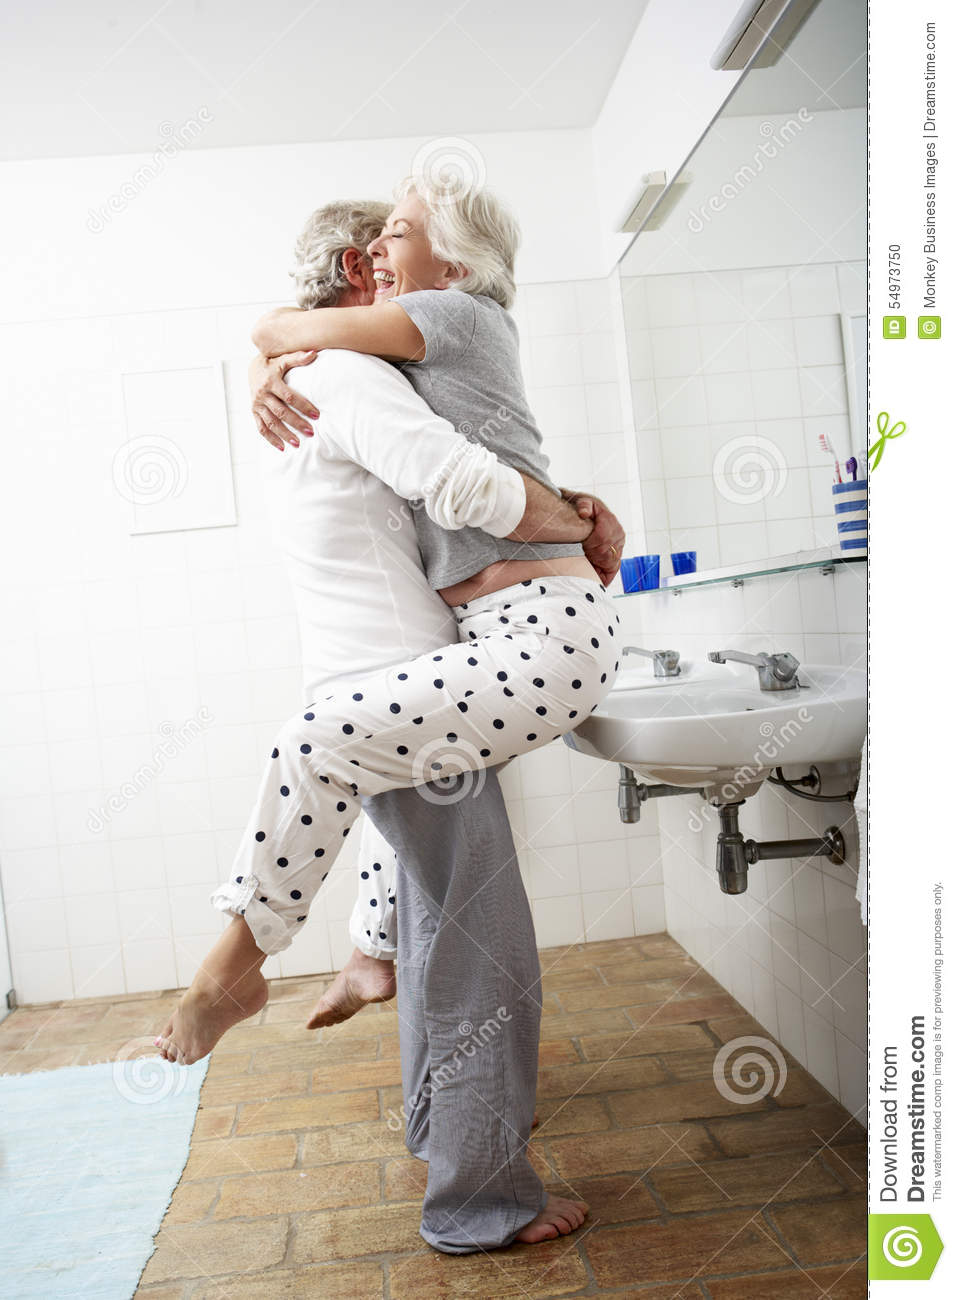 Romantic senior couple in bathroom stock photo image for Bathroom romance photos